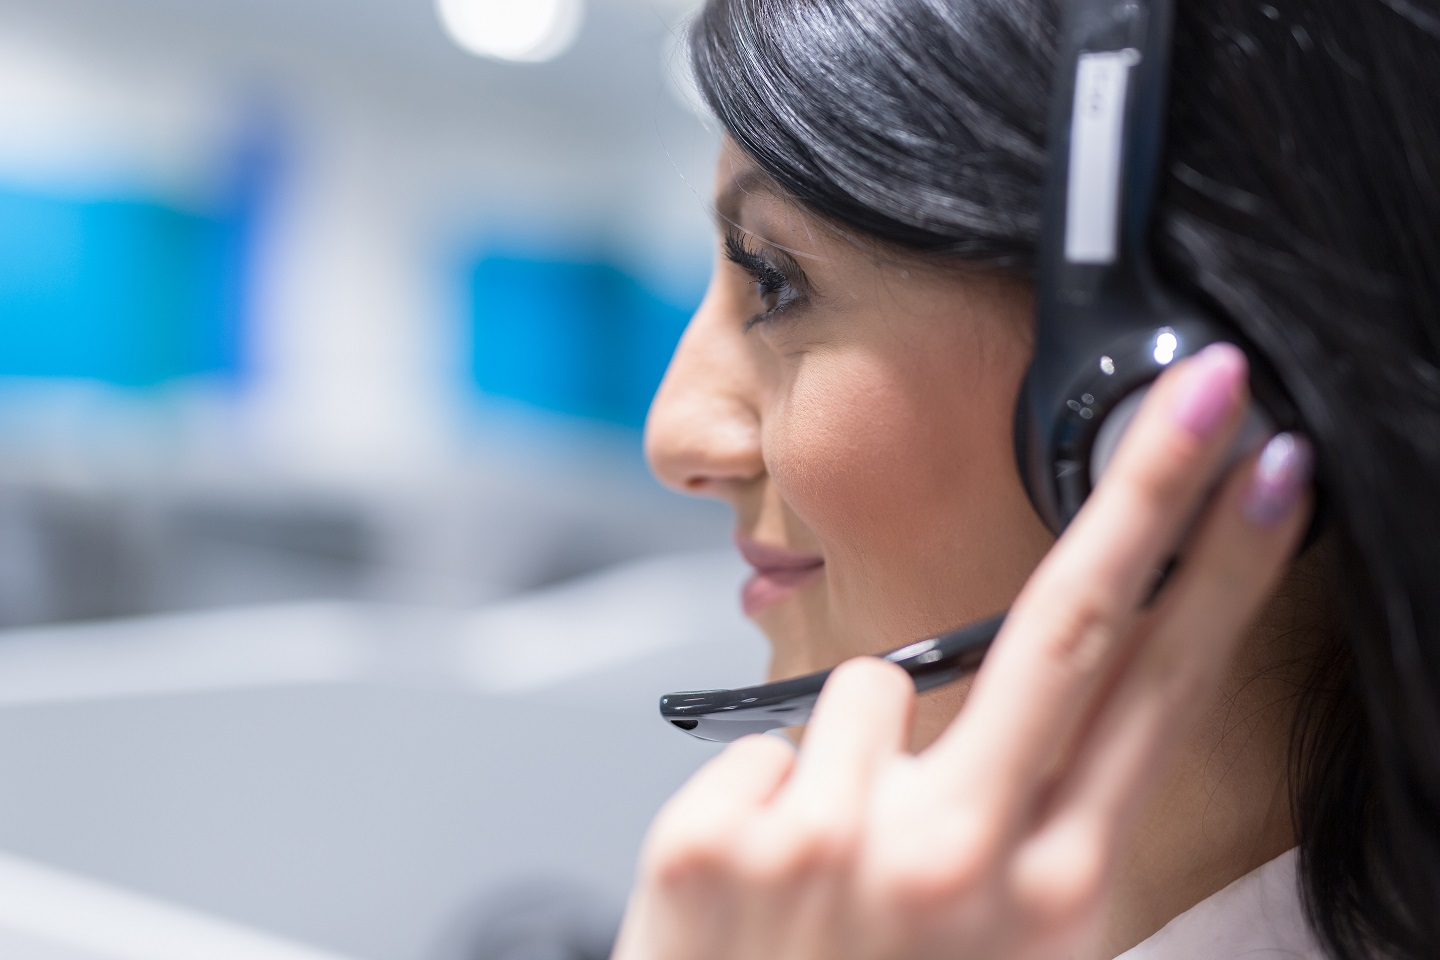 NHS launches helpline for staff tackling Covid-19